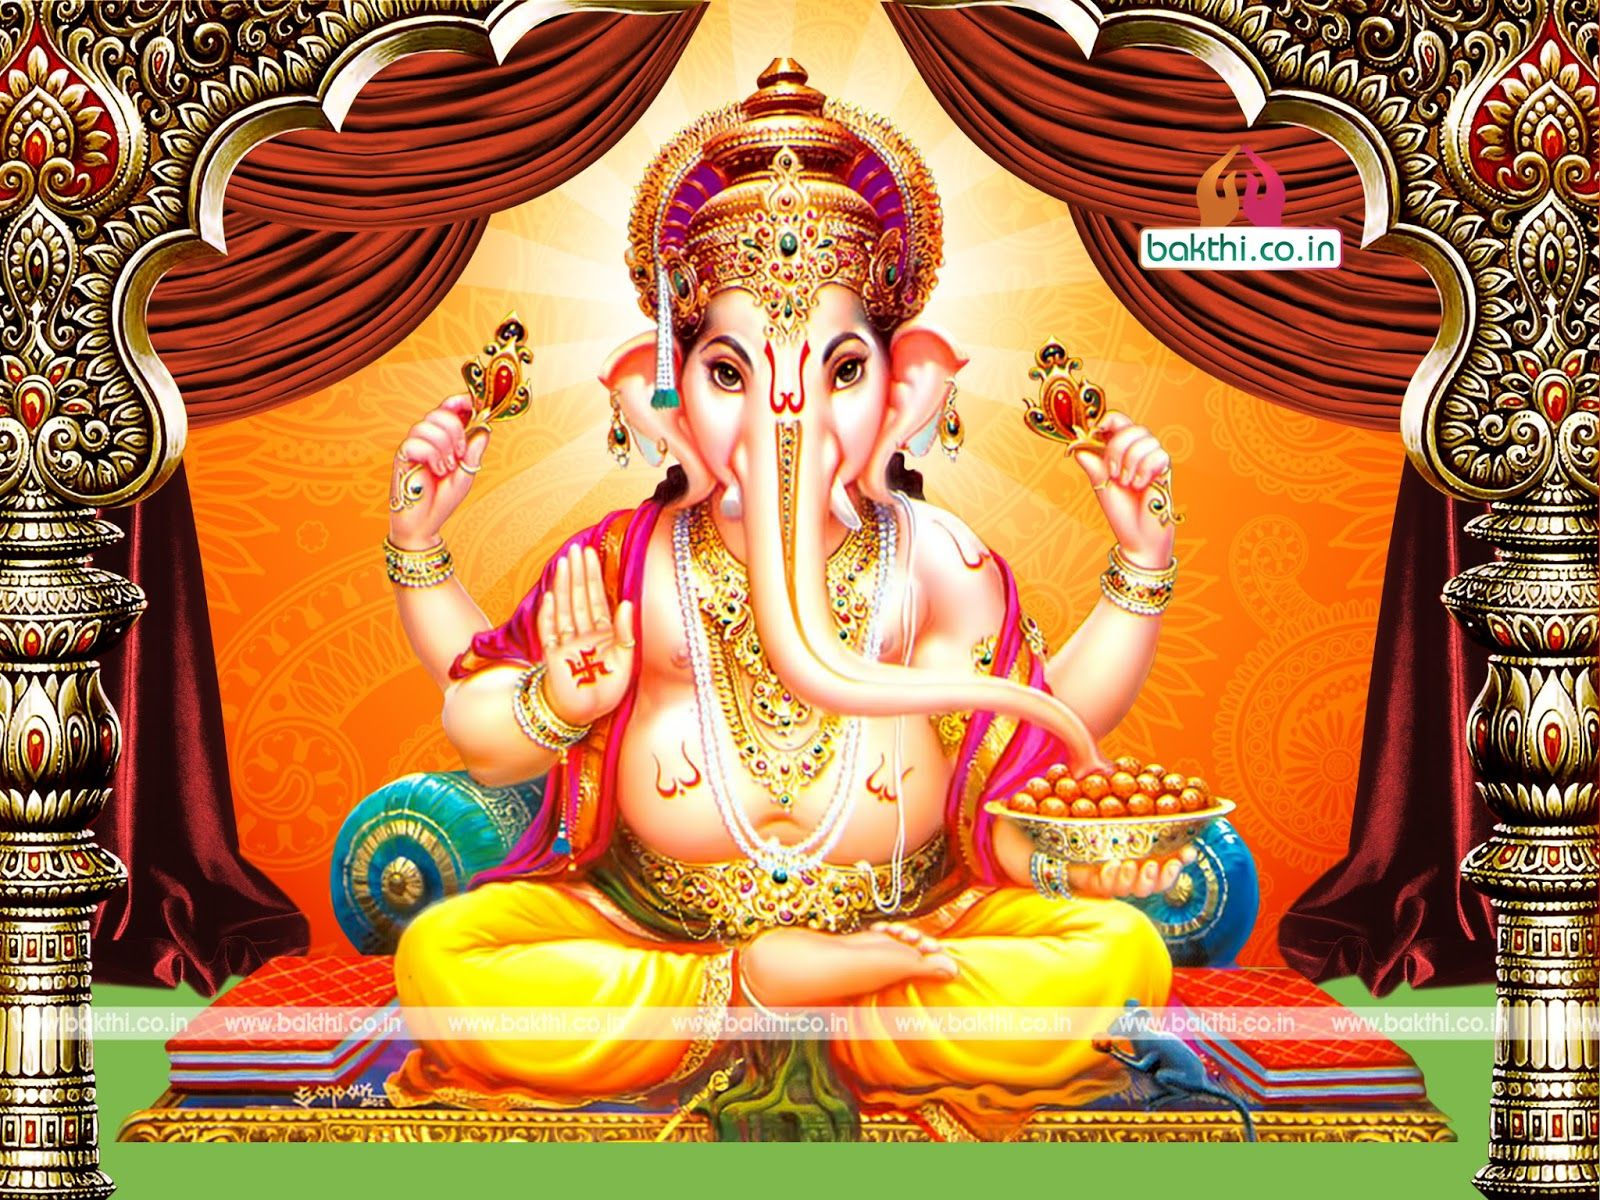 lord ganesha hd images free download bakthi co in devoitonal